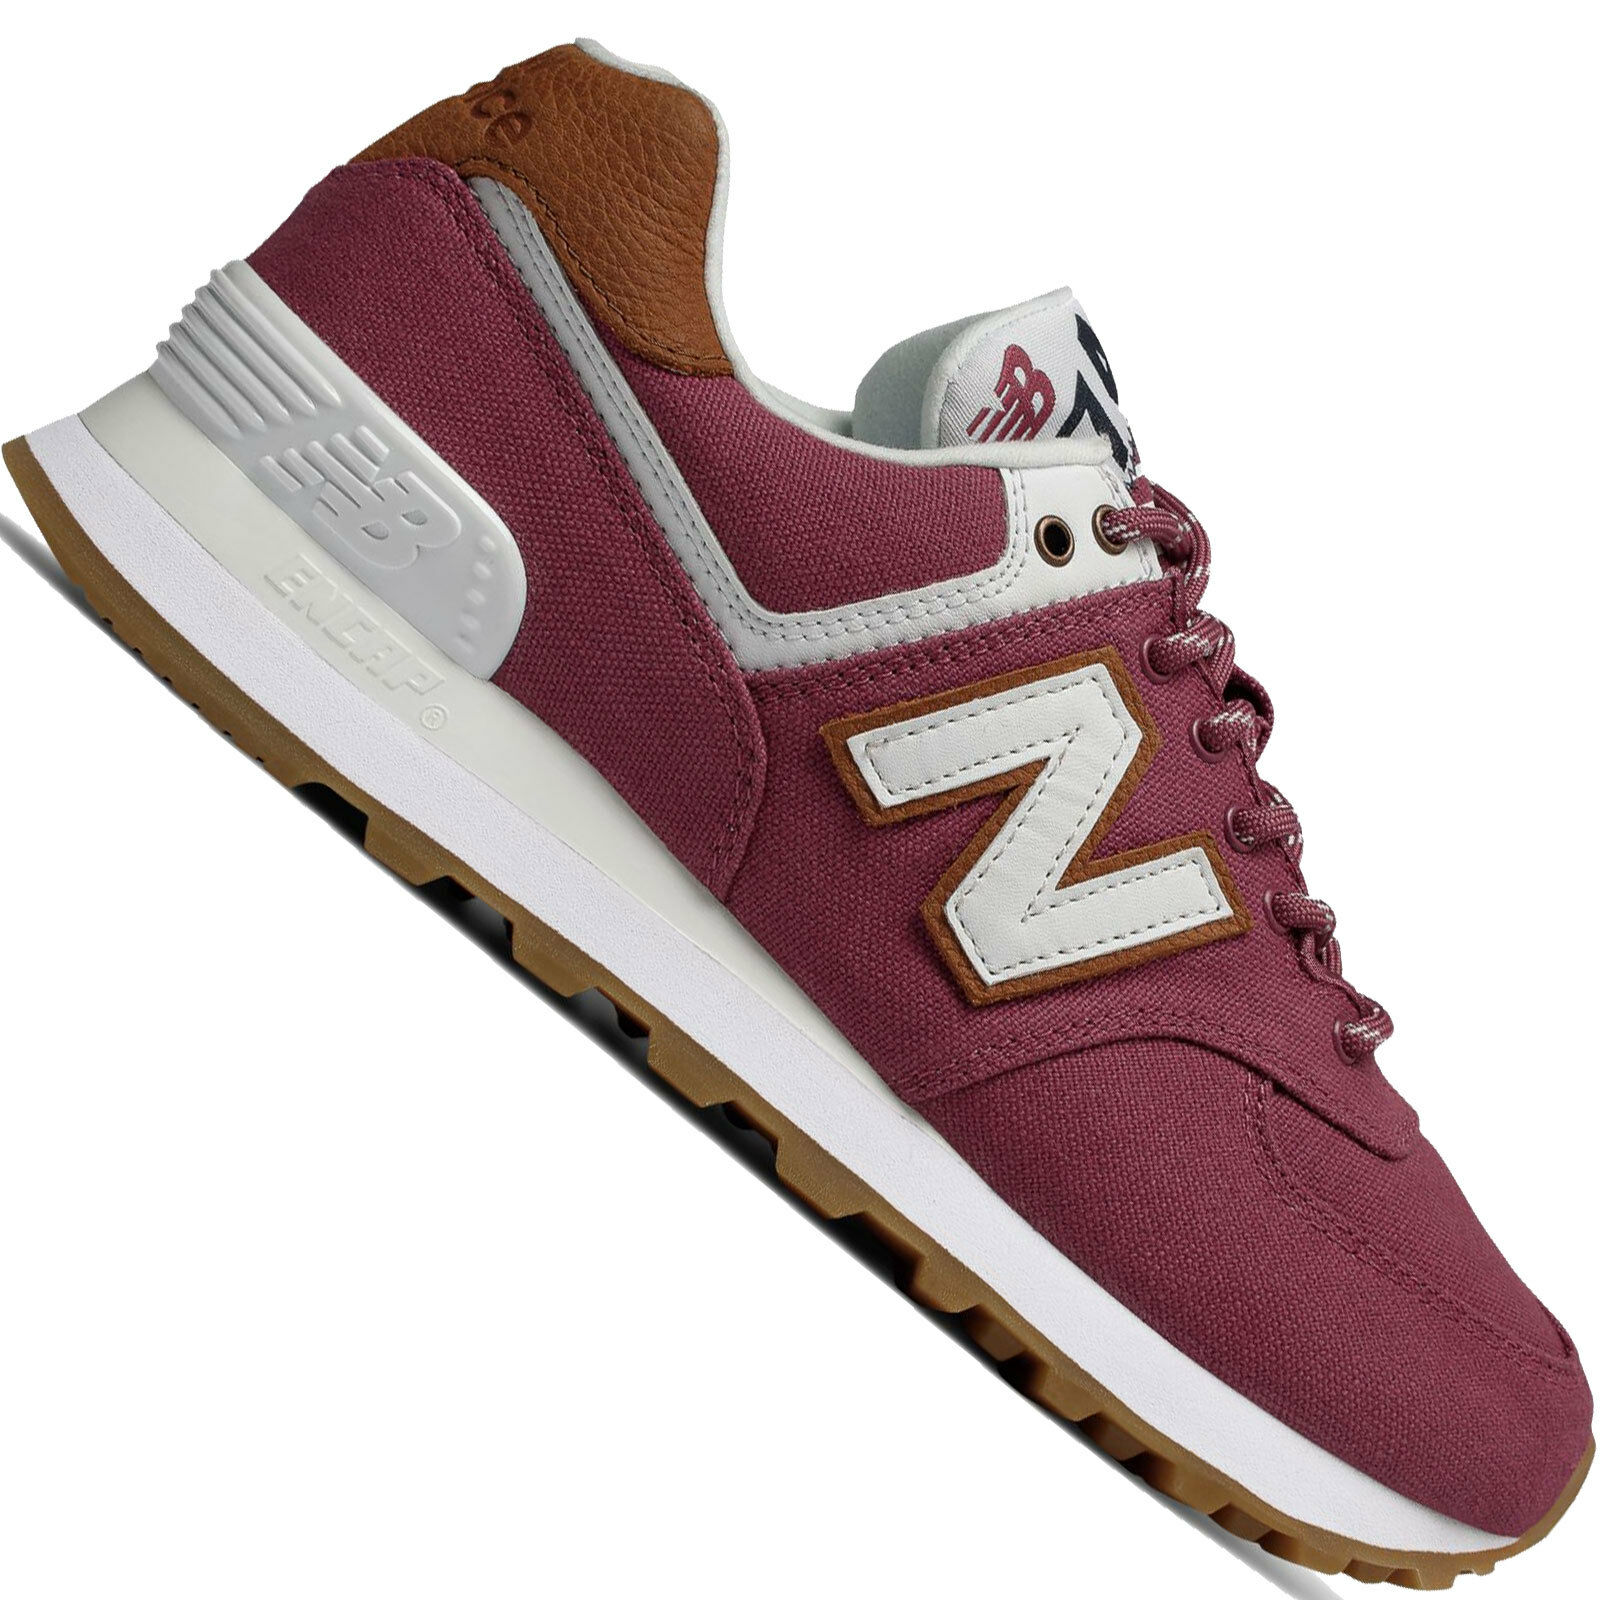 New Balance 574 Women's Textile Sneakers Textile Women's Canvas Trainers Sports Shoes 3eff56